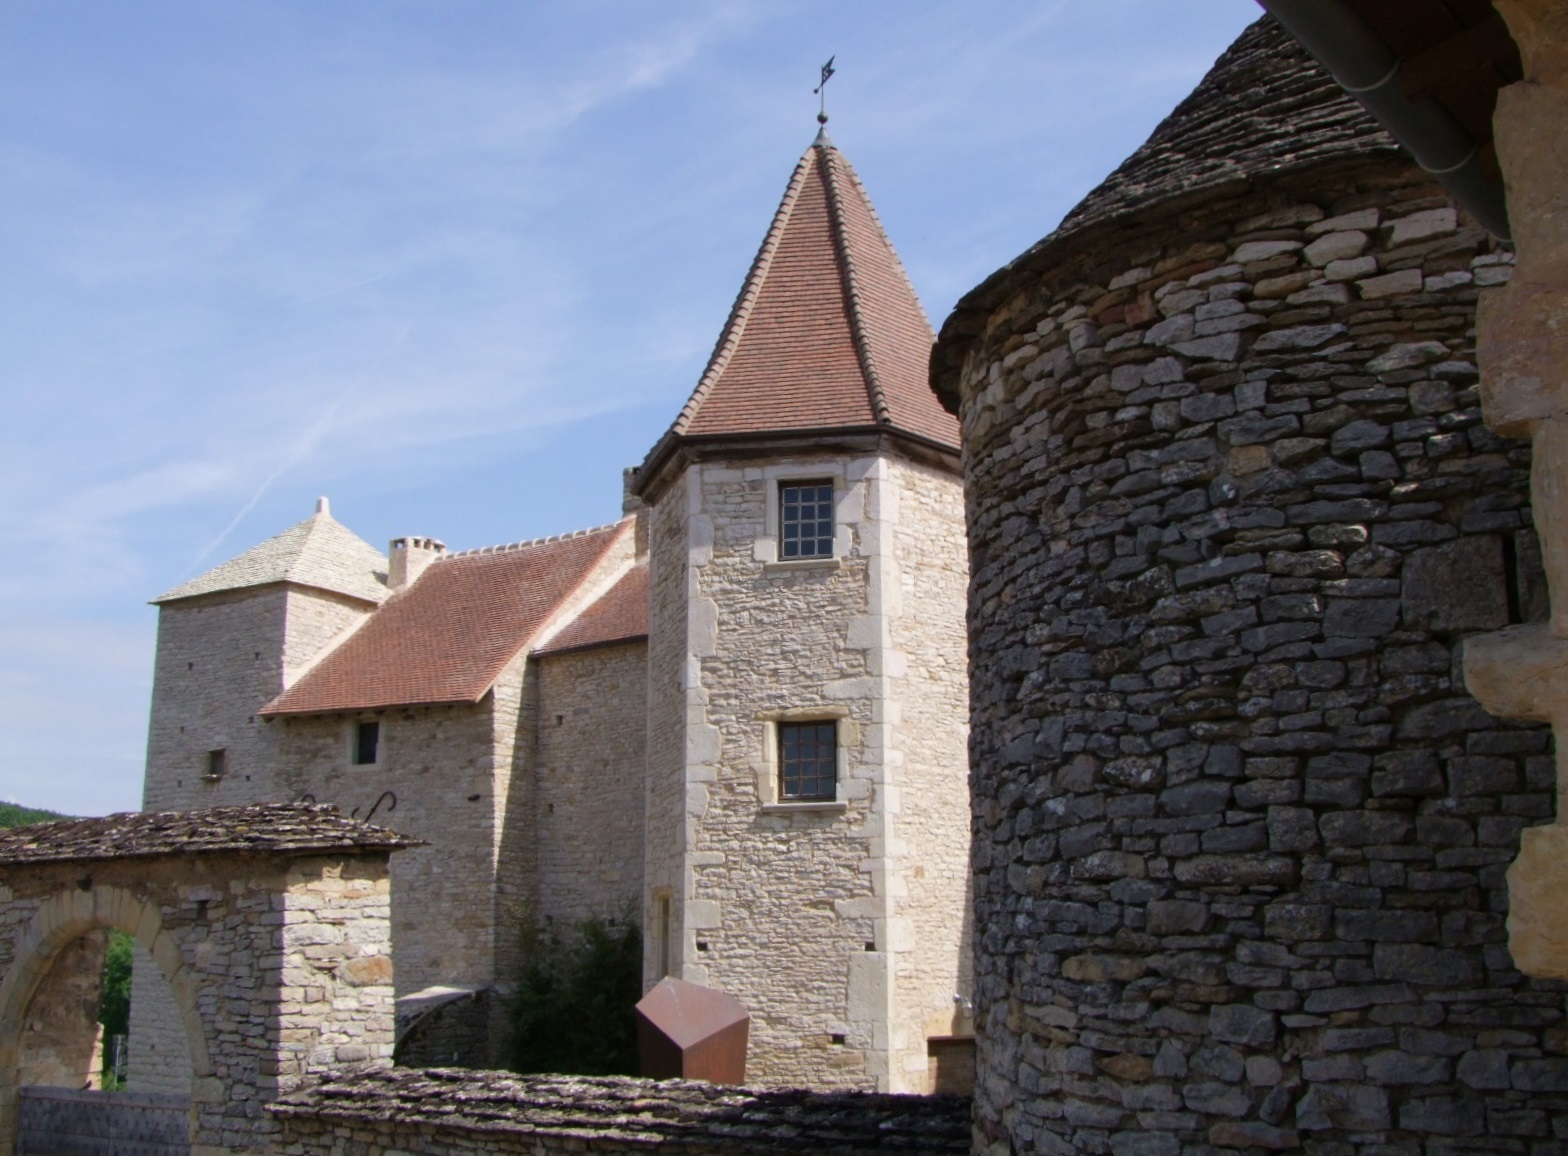 (Former) Priory, French Heritage monument to Blanot.